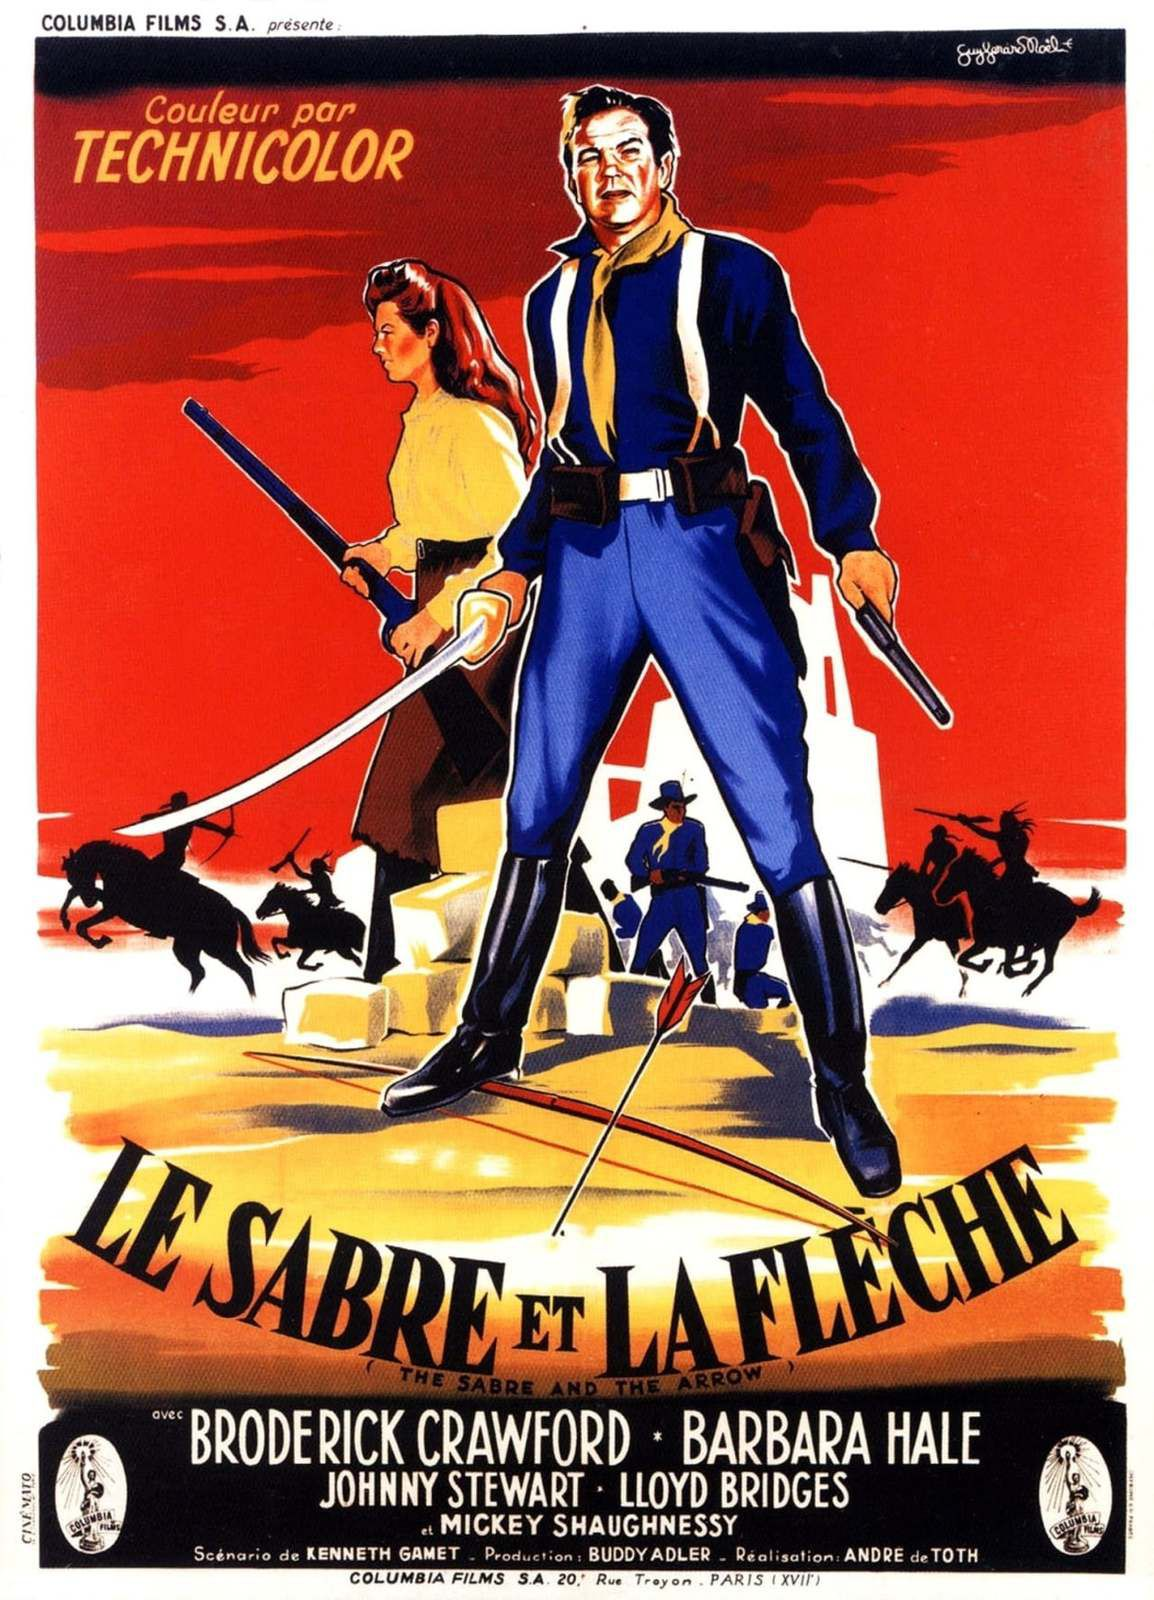 LE SABRE ET LA FLECHE (Last of the Comanches)